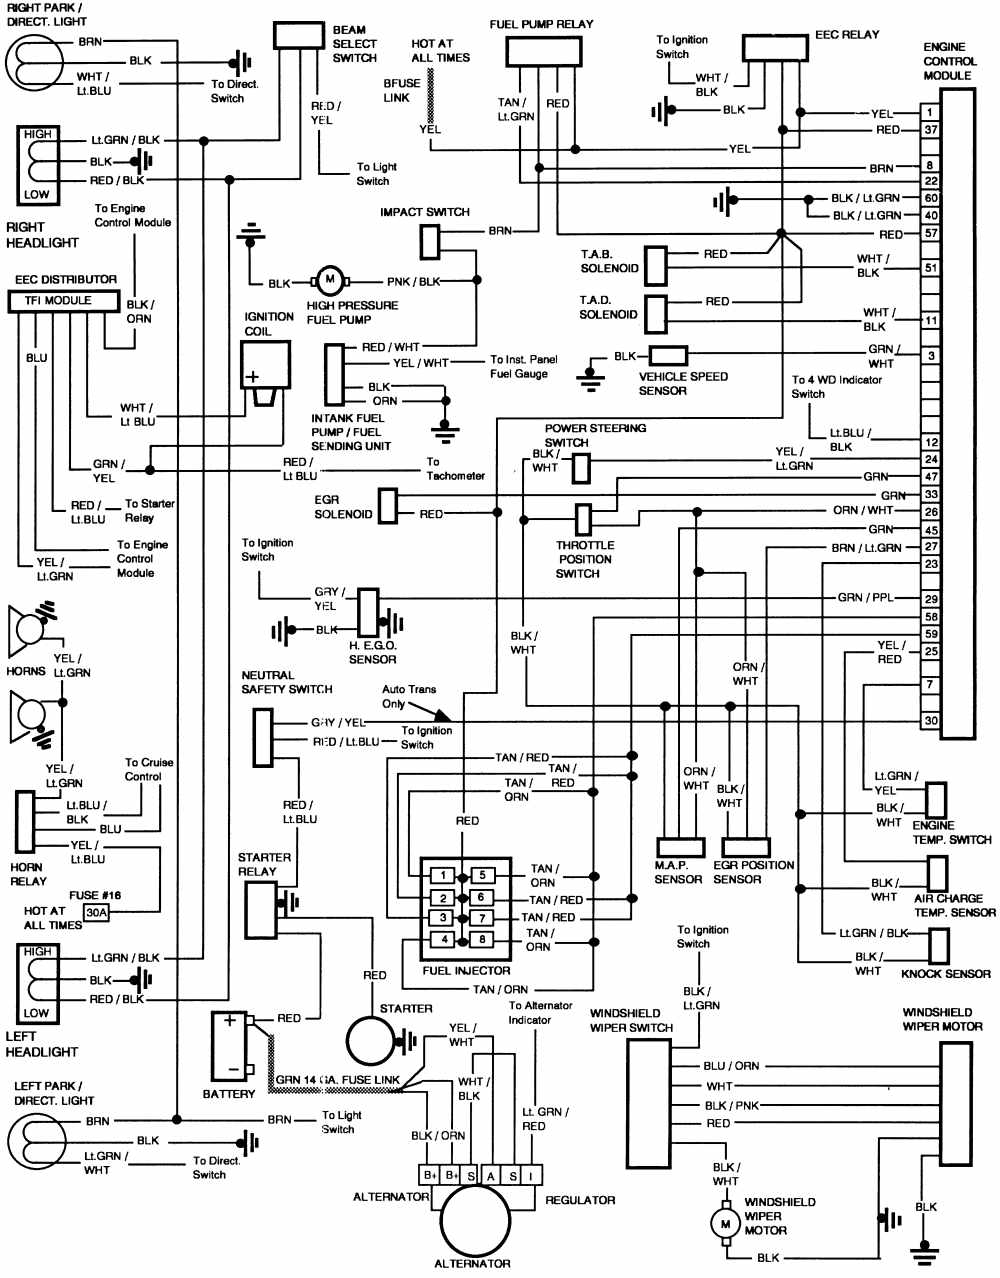 wiring diagram for 1993 ford f150 the wiring diagram 1993 ford 250 engine diagram 1993 printable wiring diagrams wiring diagram